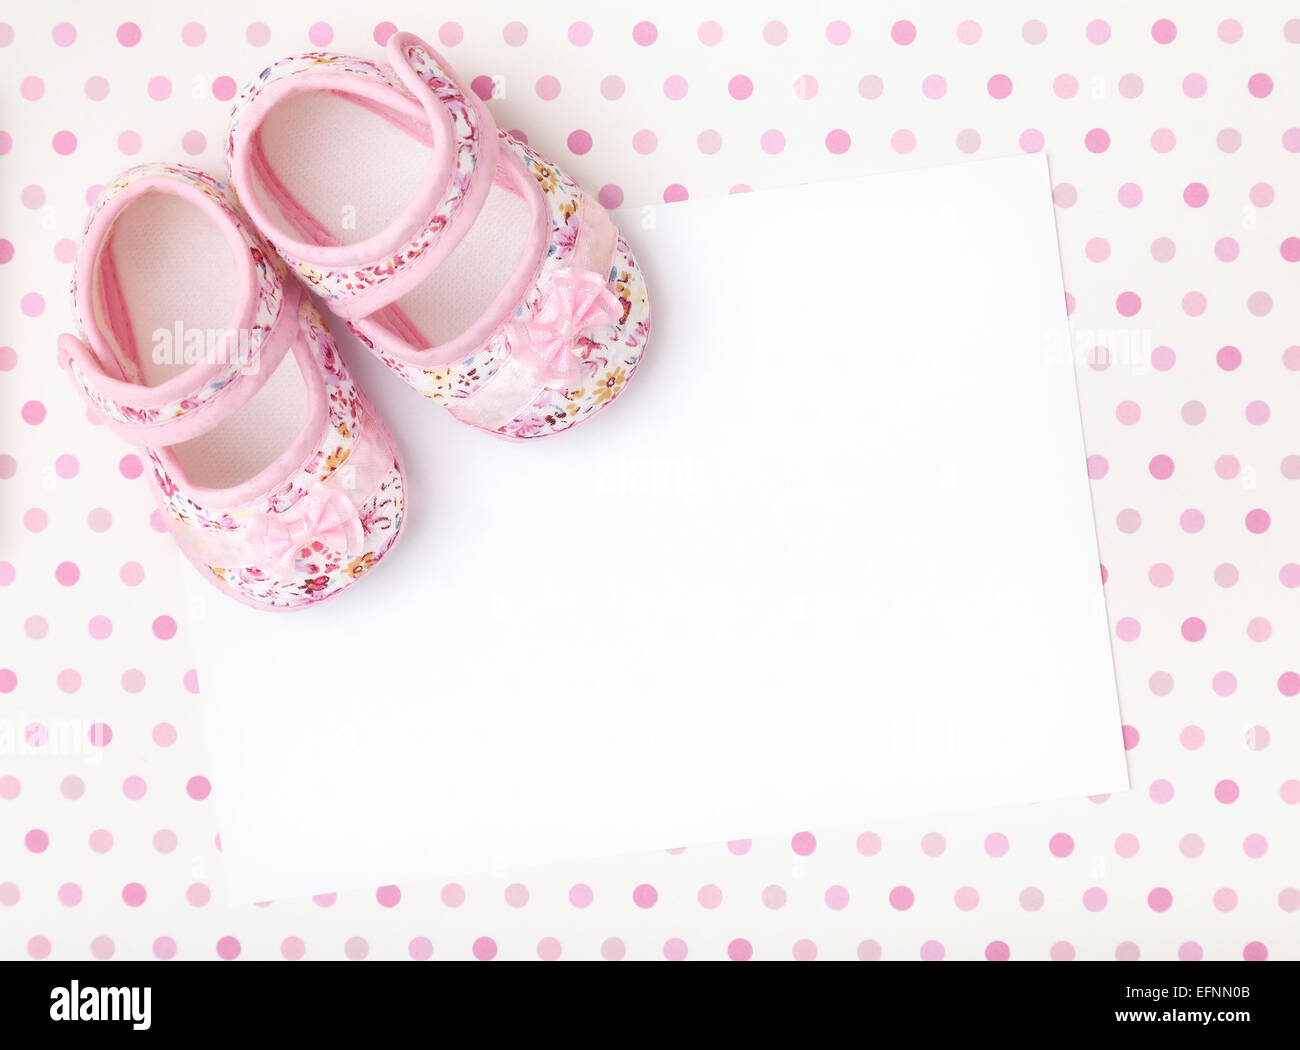 b45bc40c10a Blank card with baby girl shoes on a pastel pink spotted background ...